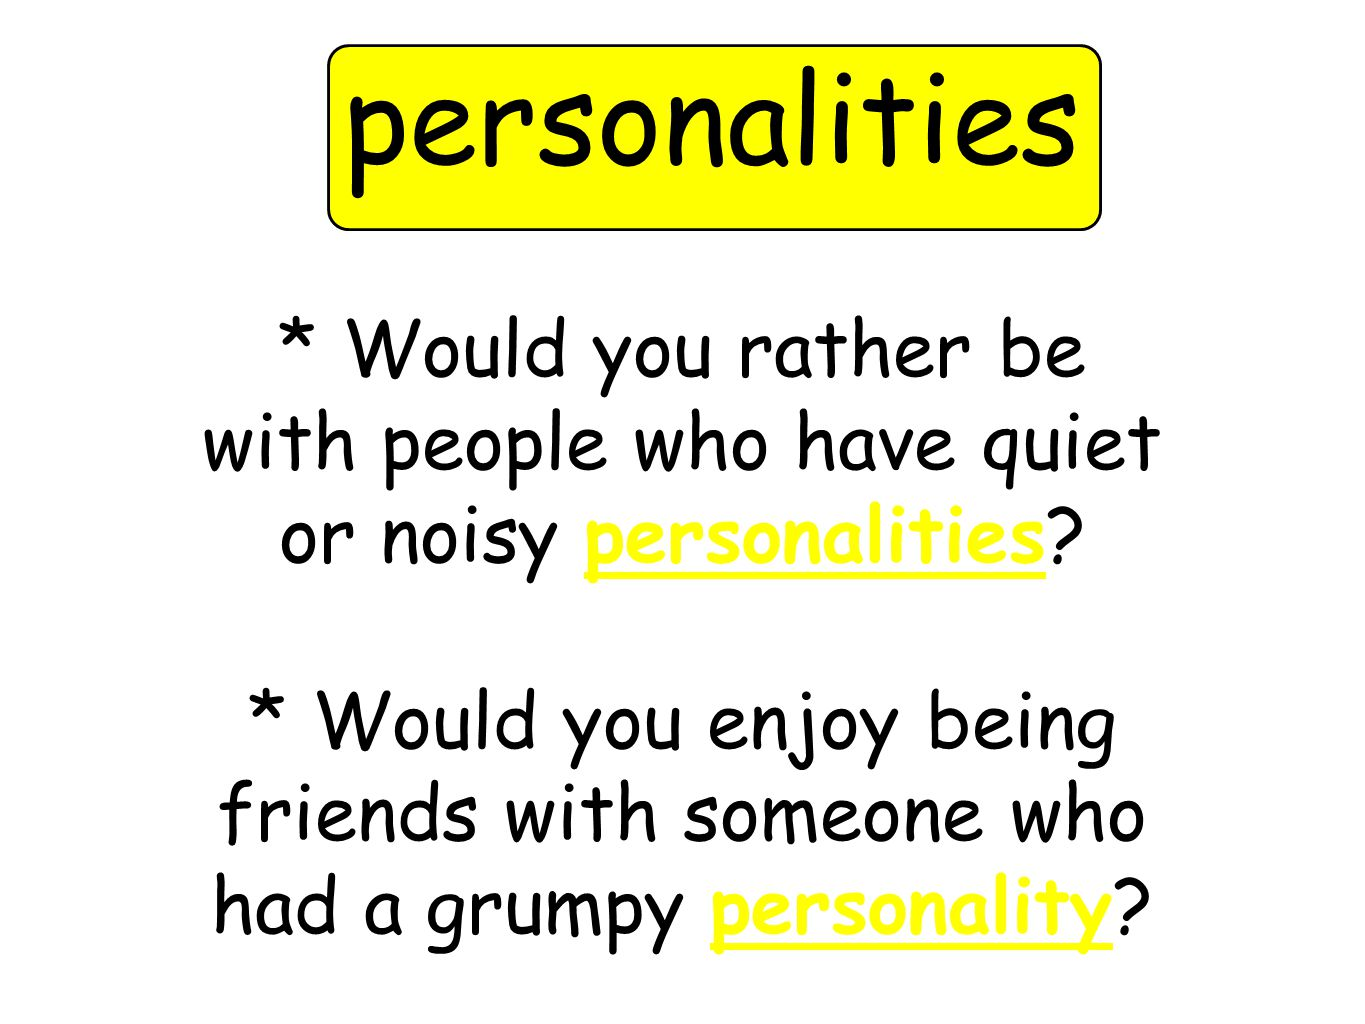 * Would you rather be with people who have quiet or noisy personalities.